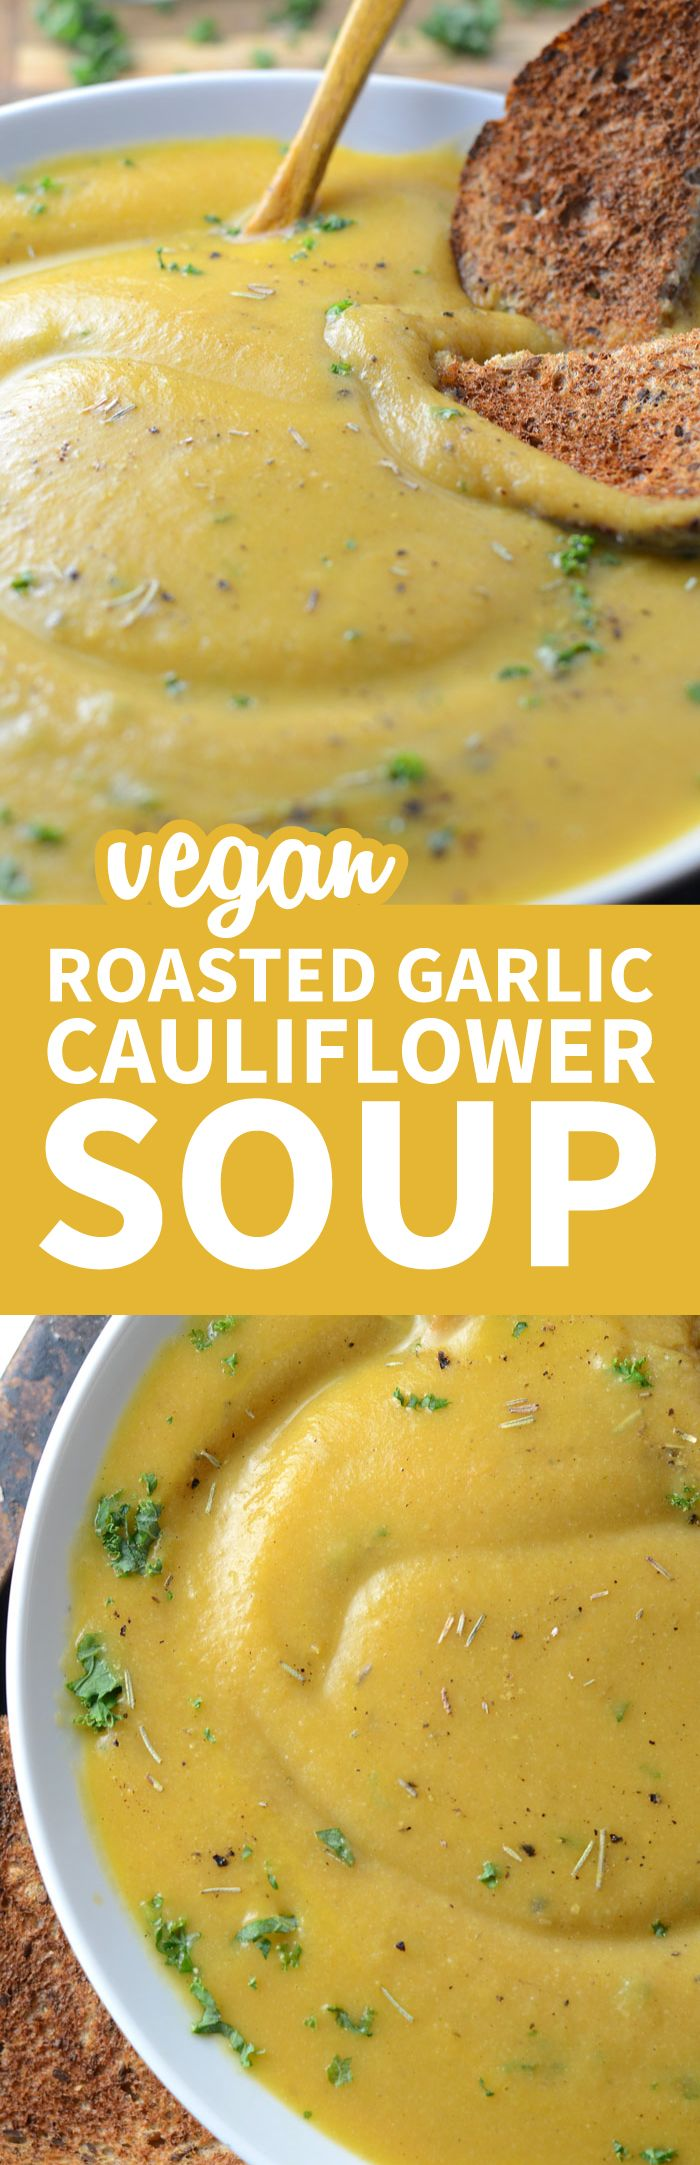 This creamy roasted garlic cauliflower soup is vegan, oil-free, low in fat and carbs and has a delicious, rich, garlic flavour. Easy to make with everyday ingredients, ready in under 30 minutes. Creamy Roasted Garlic Cauliflower Soup http://runningonreal